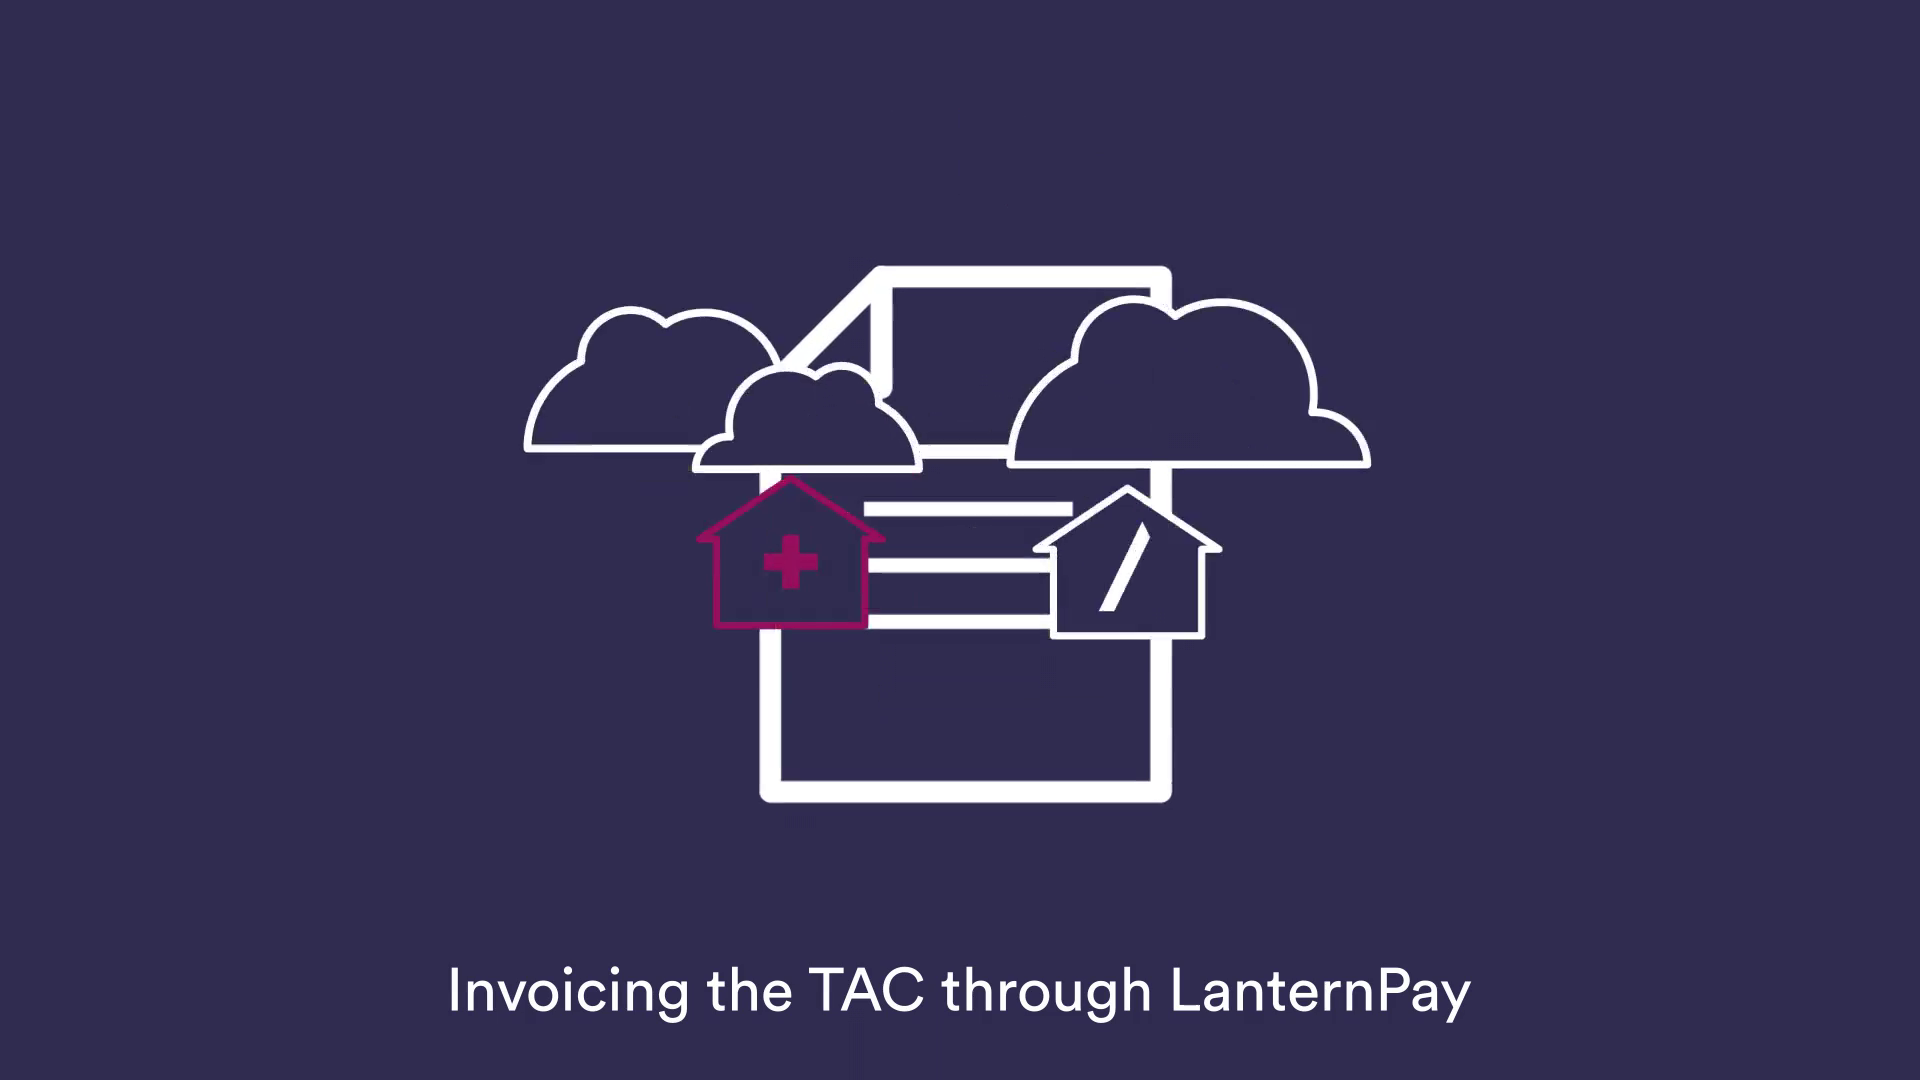 How to Invoice the TAC - TAC - Transport Accident Commission